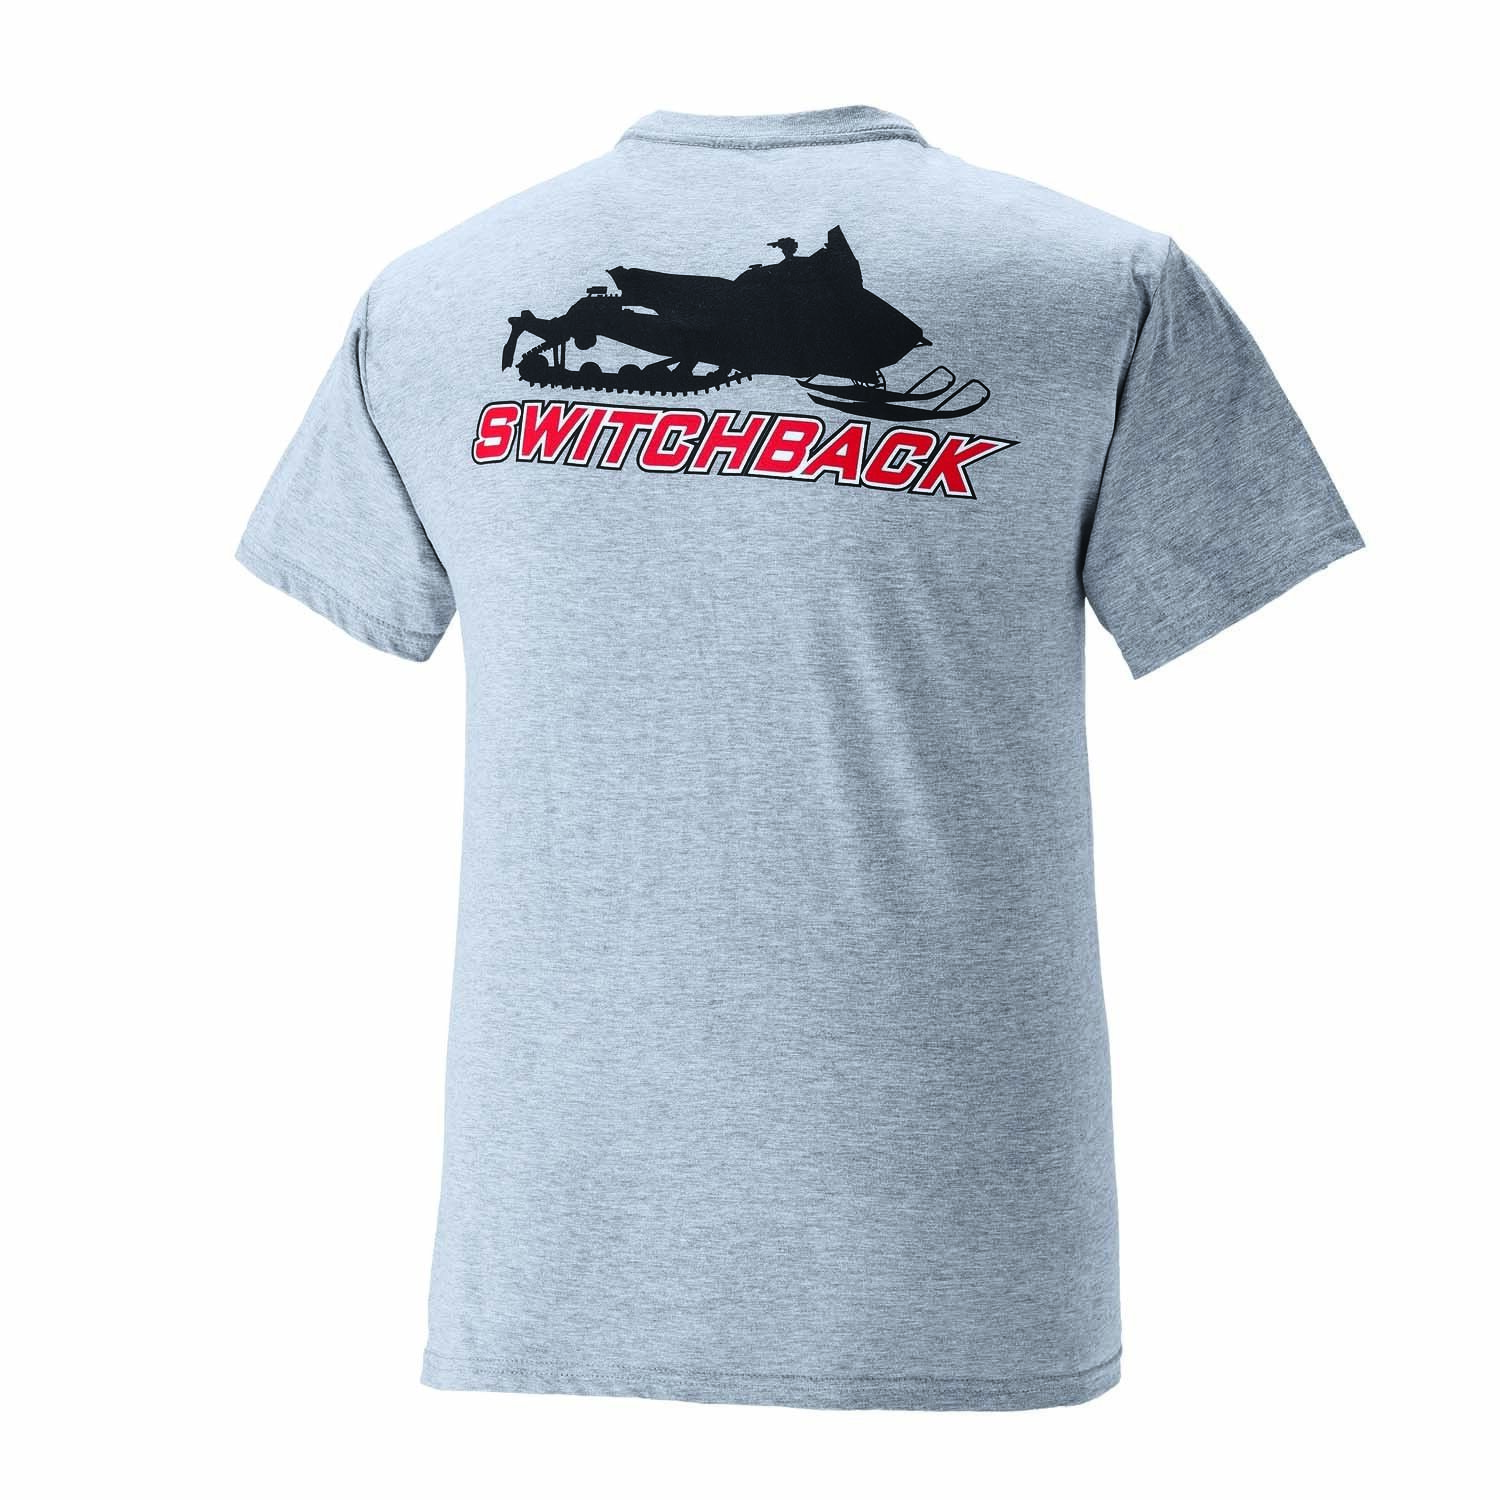 New Polaris Men's Switchback Tee - Gray - 2868566